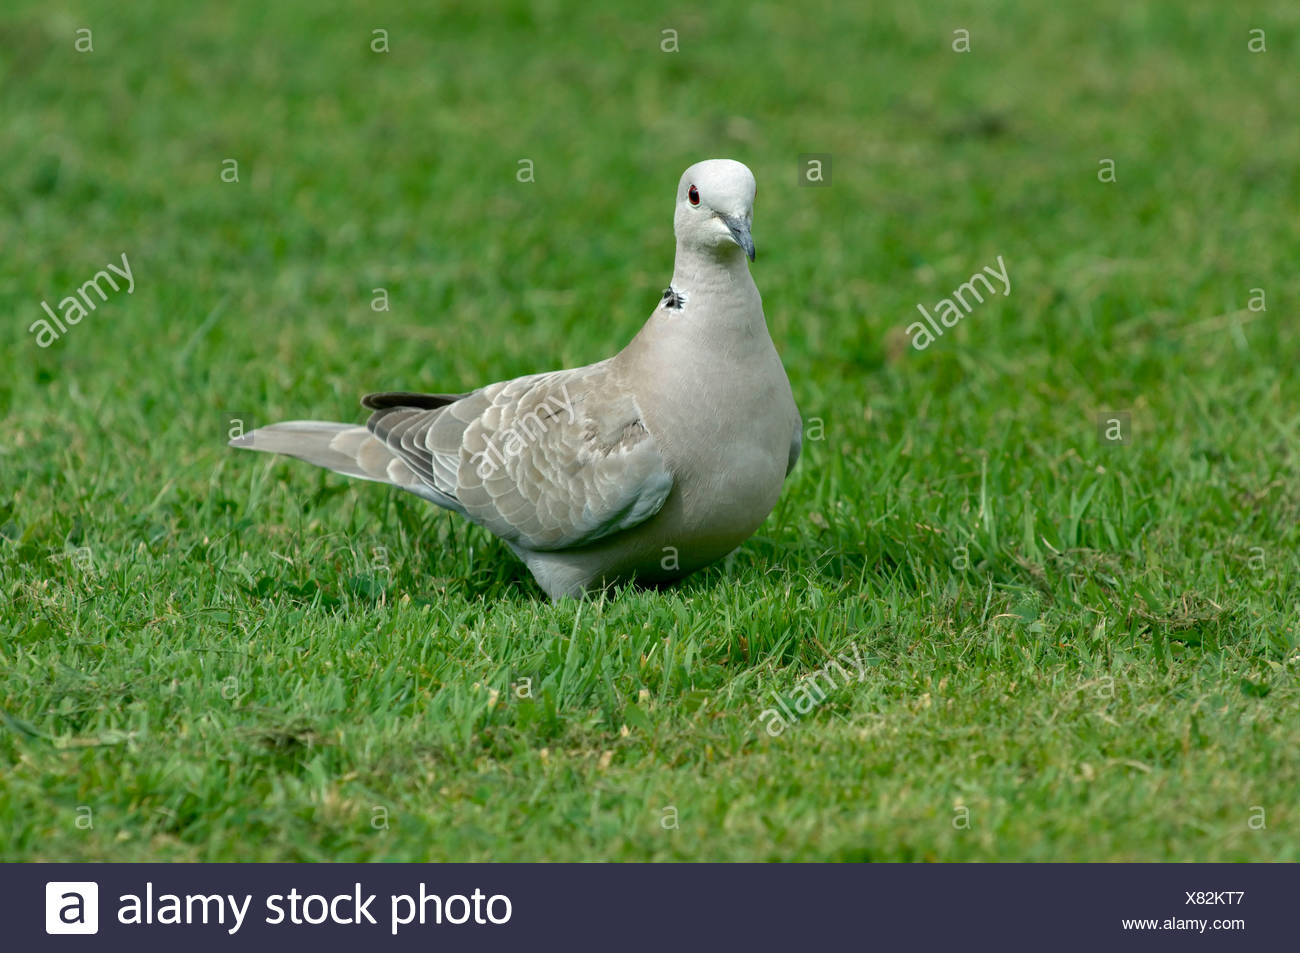 Collared dove on grass Devon - Stock Image